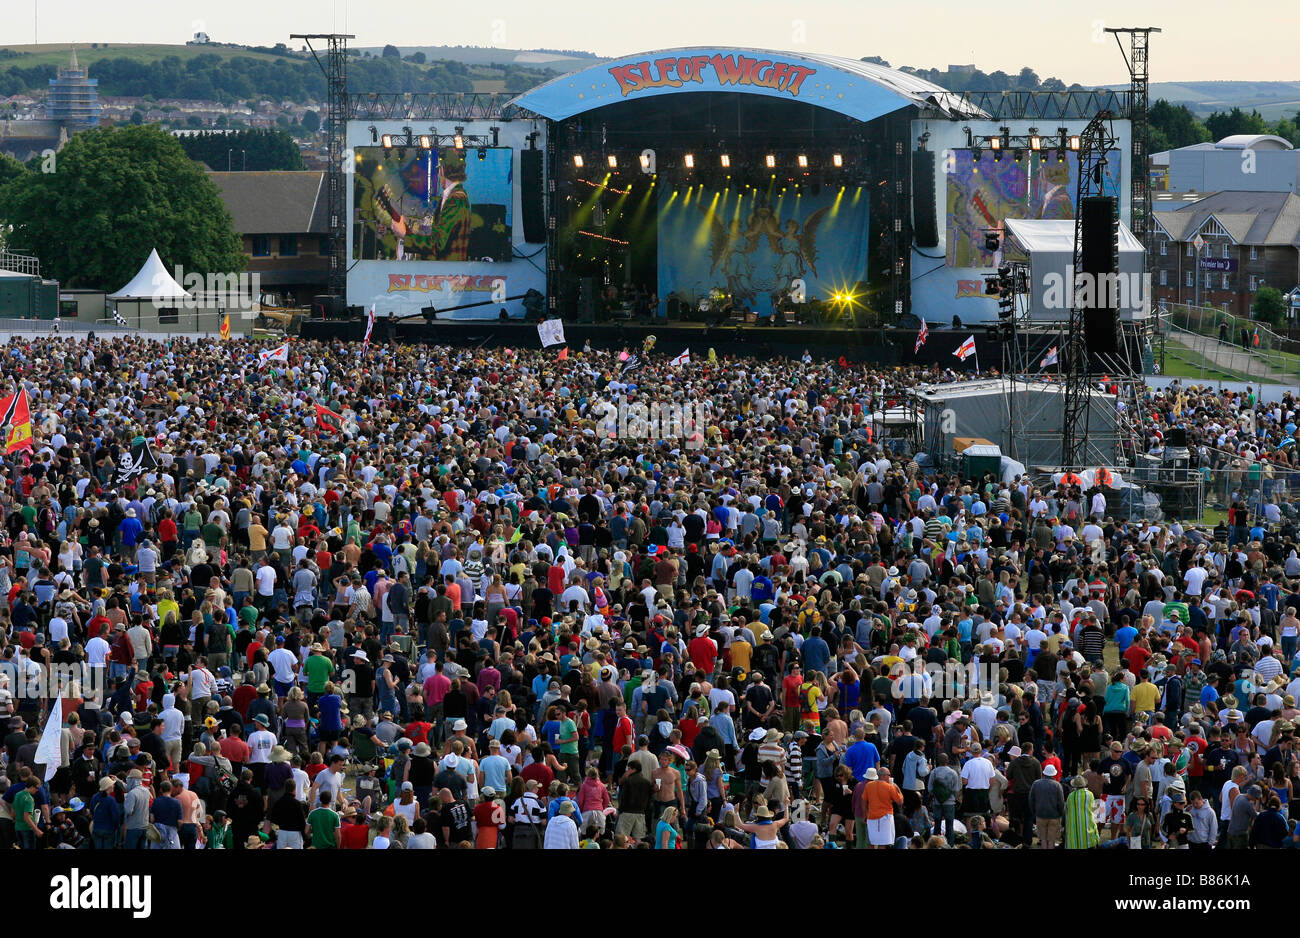 Crowds gather around the main stage at the 2008 Isle of Wight Festival in Newport on the Isle of Wight. Stock Photo